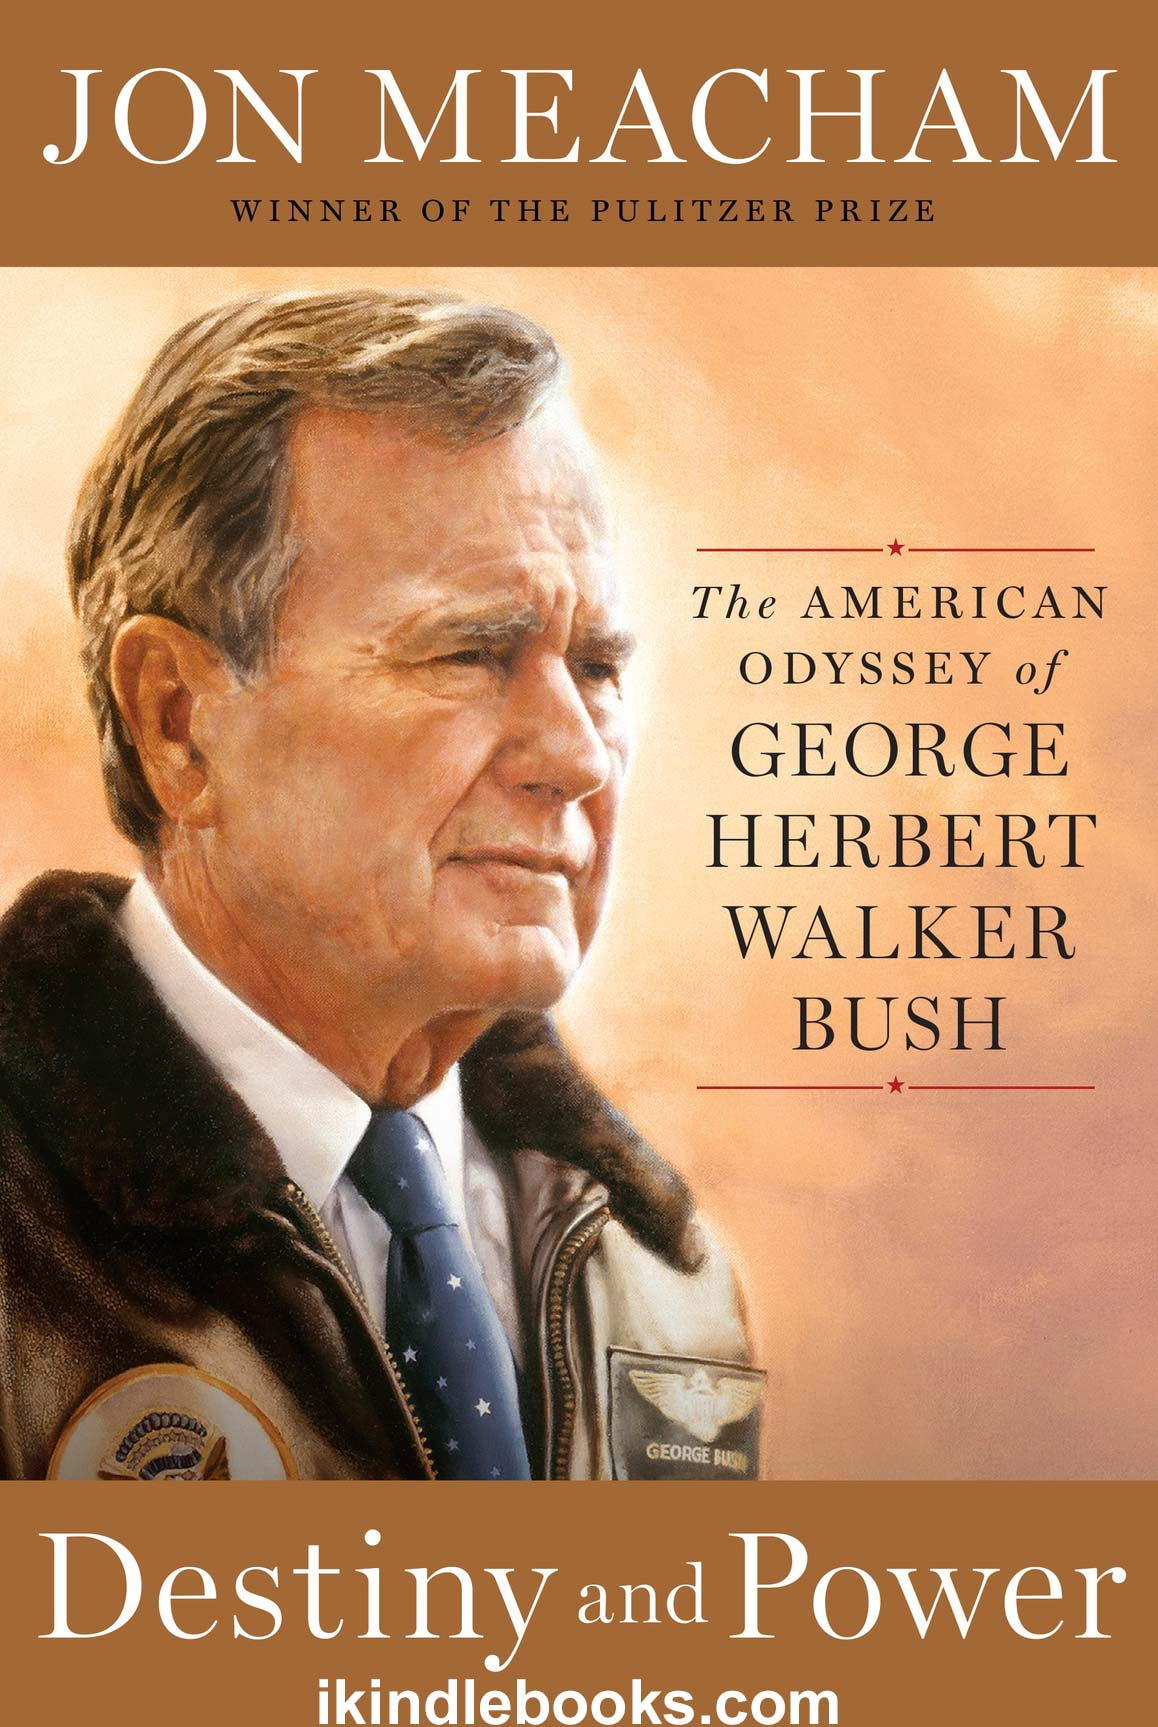 Download ebook Destiny and Power: The American Odyssey of George Herbert Walker Bush